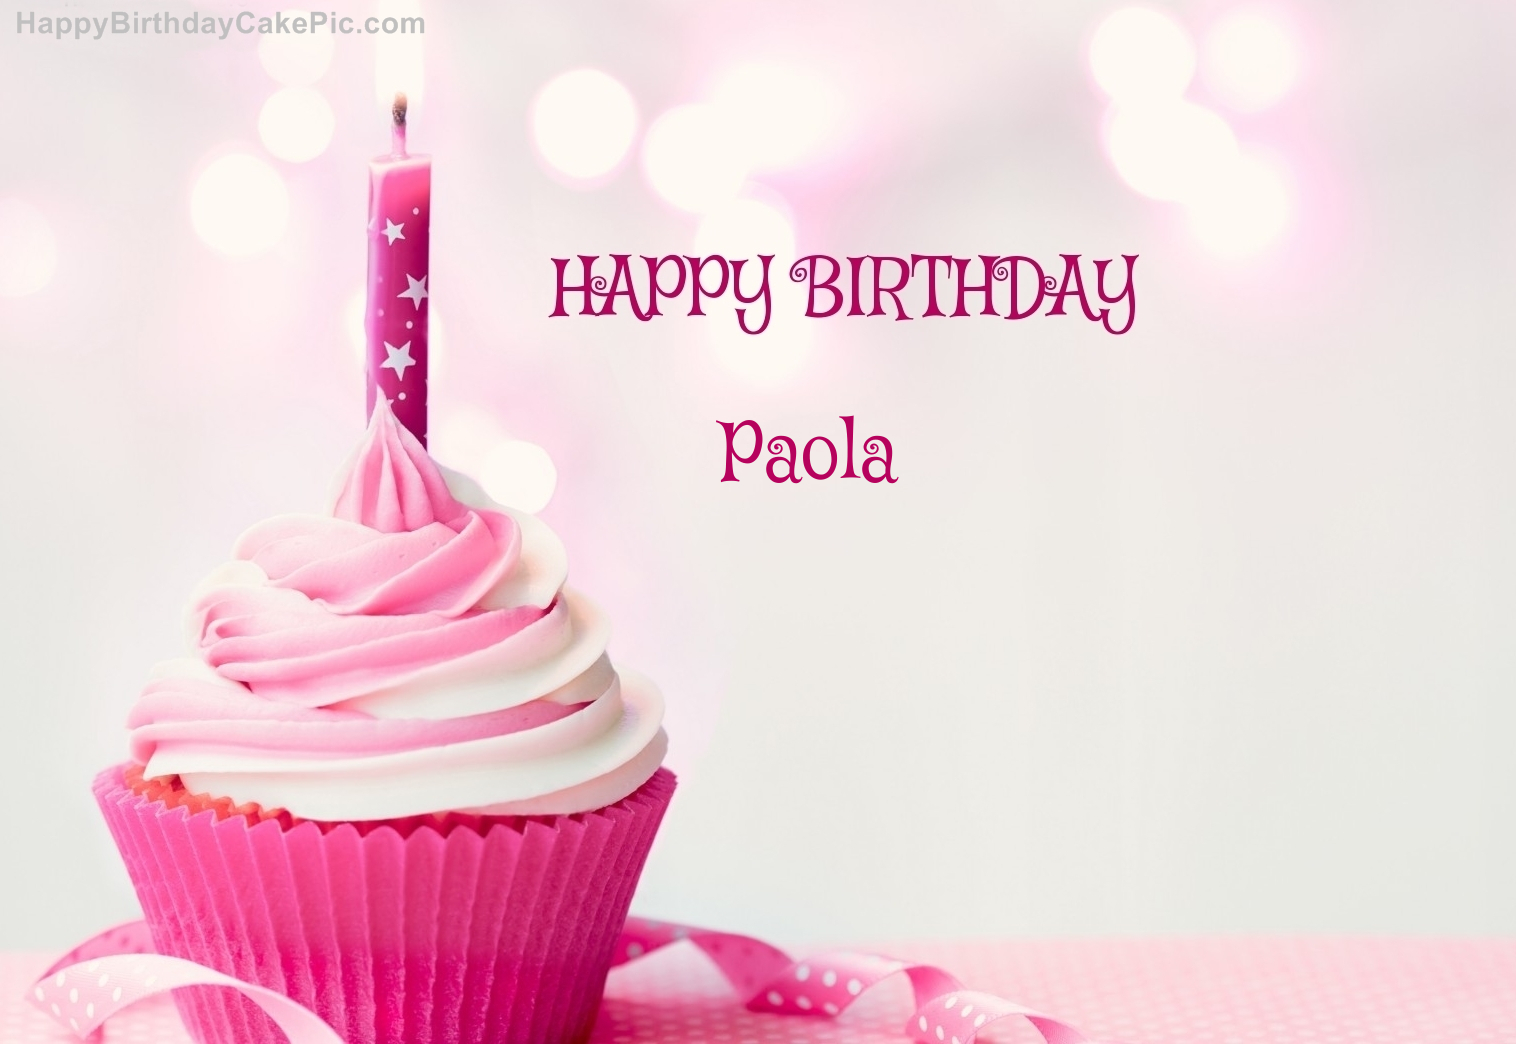 Happy Birthday Cupcake Candle Pink Cake For Paola